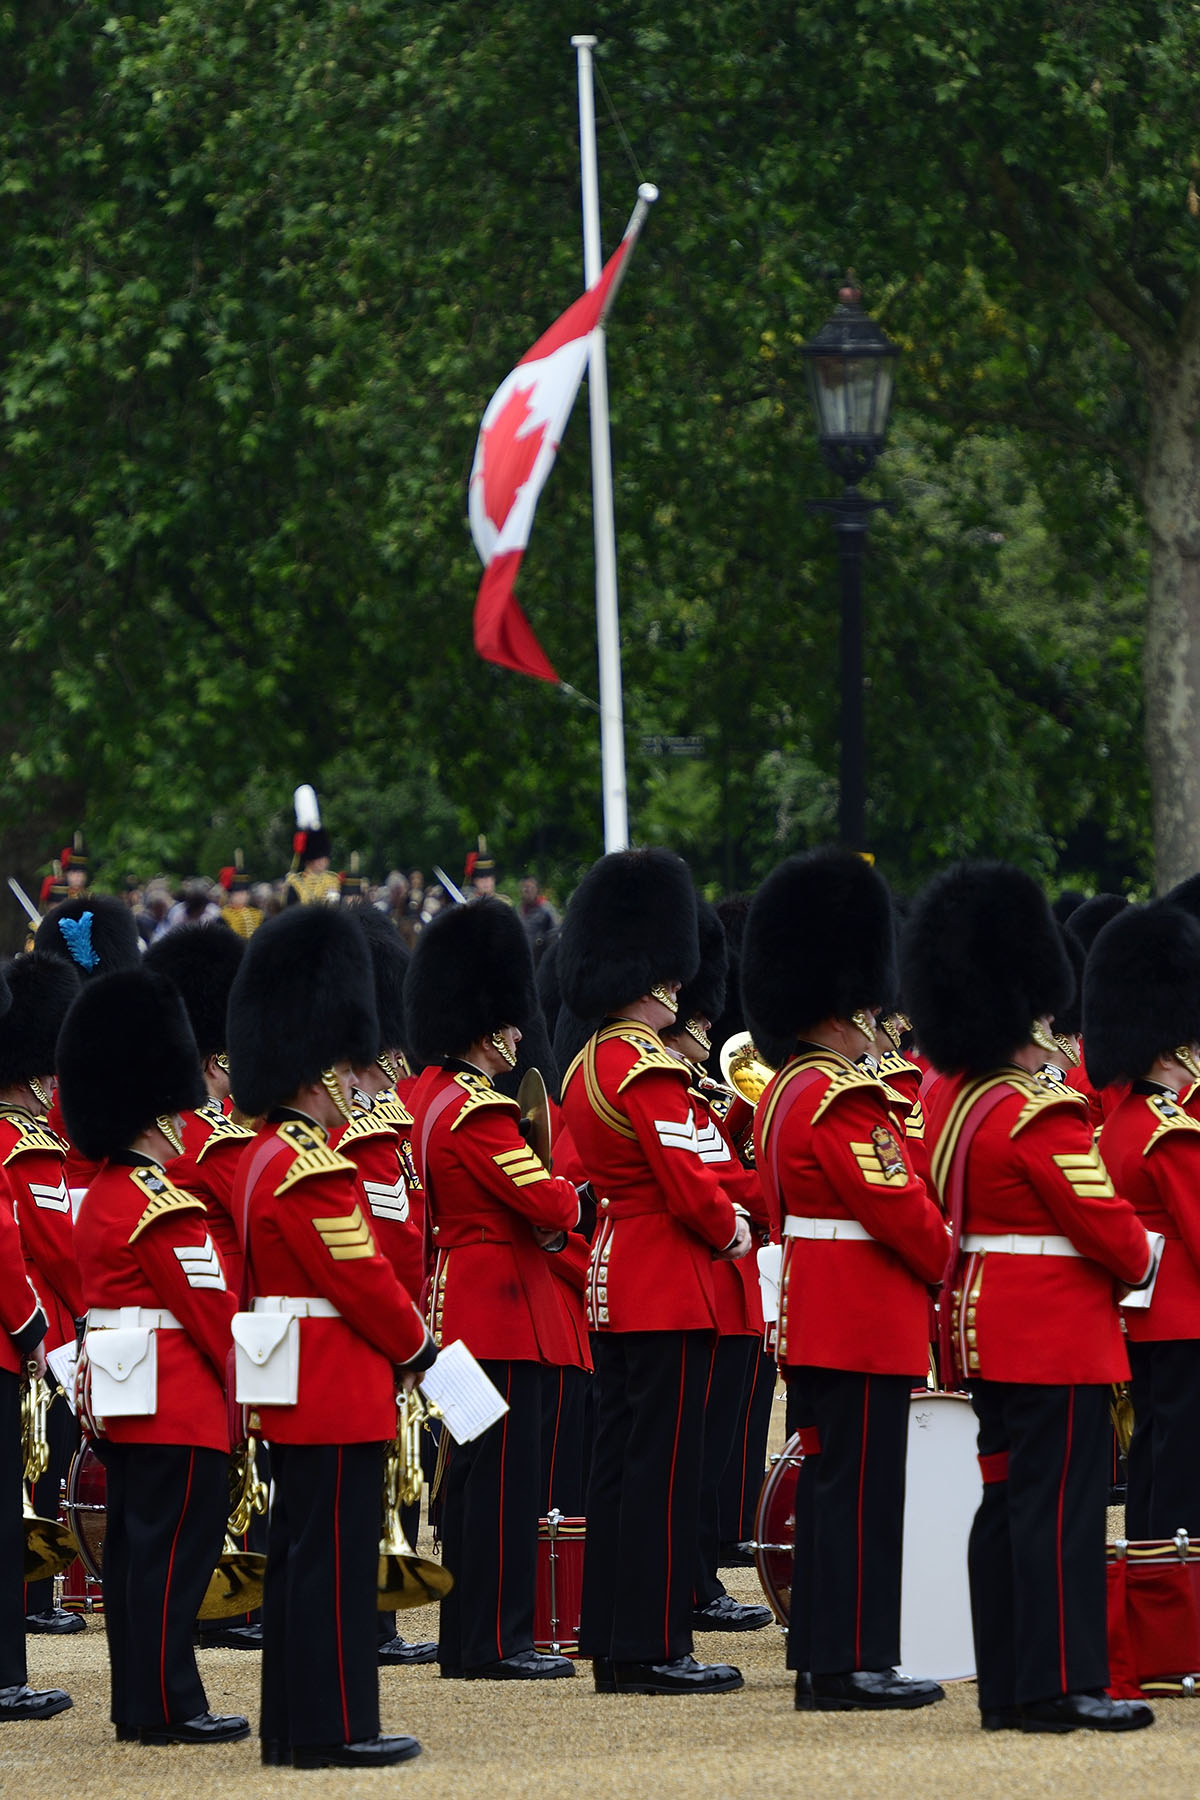 The Ceremony of Trooping the Colour, also known as the Queen's Birthday Parade, celebrates the Sovereign's birthday.